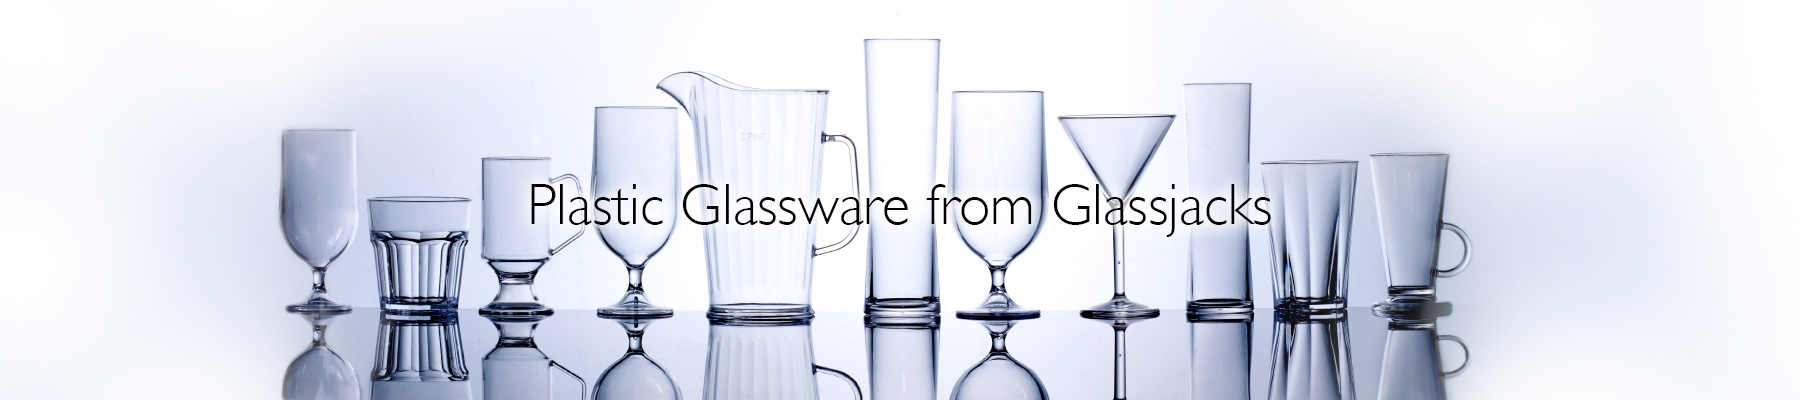 Plastic Glassware from Glassjacks